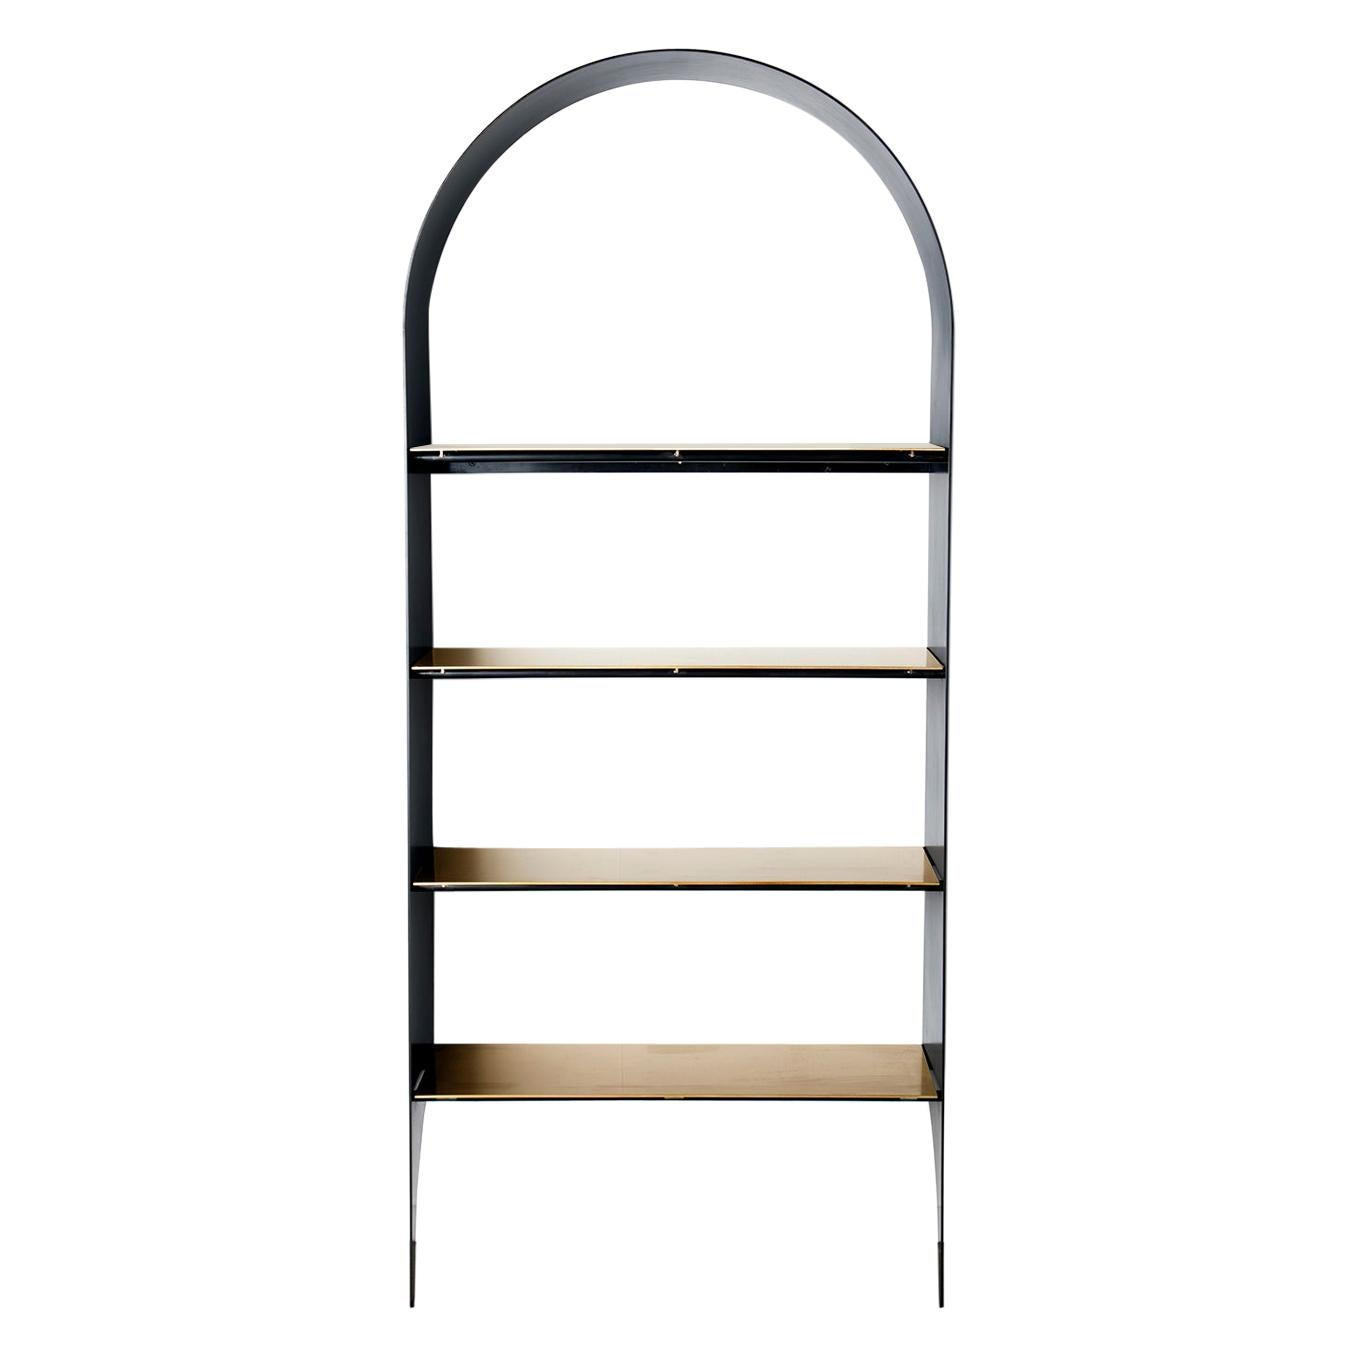 Thin Shelf Single in Contemporary Blackened Steel and Steel Inset Shelves